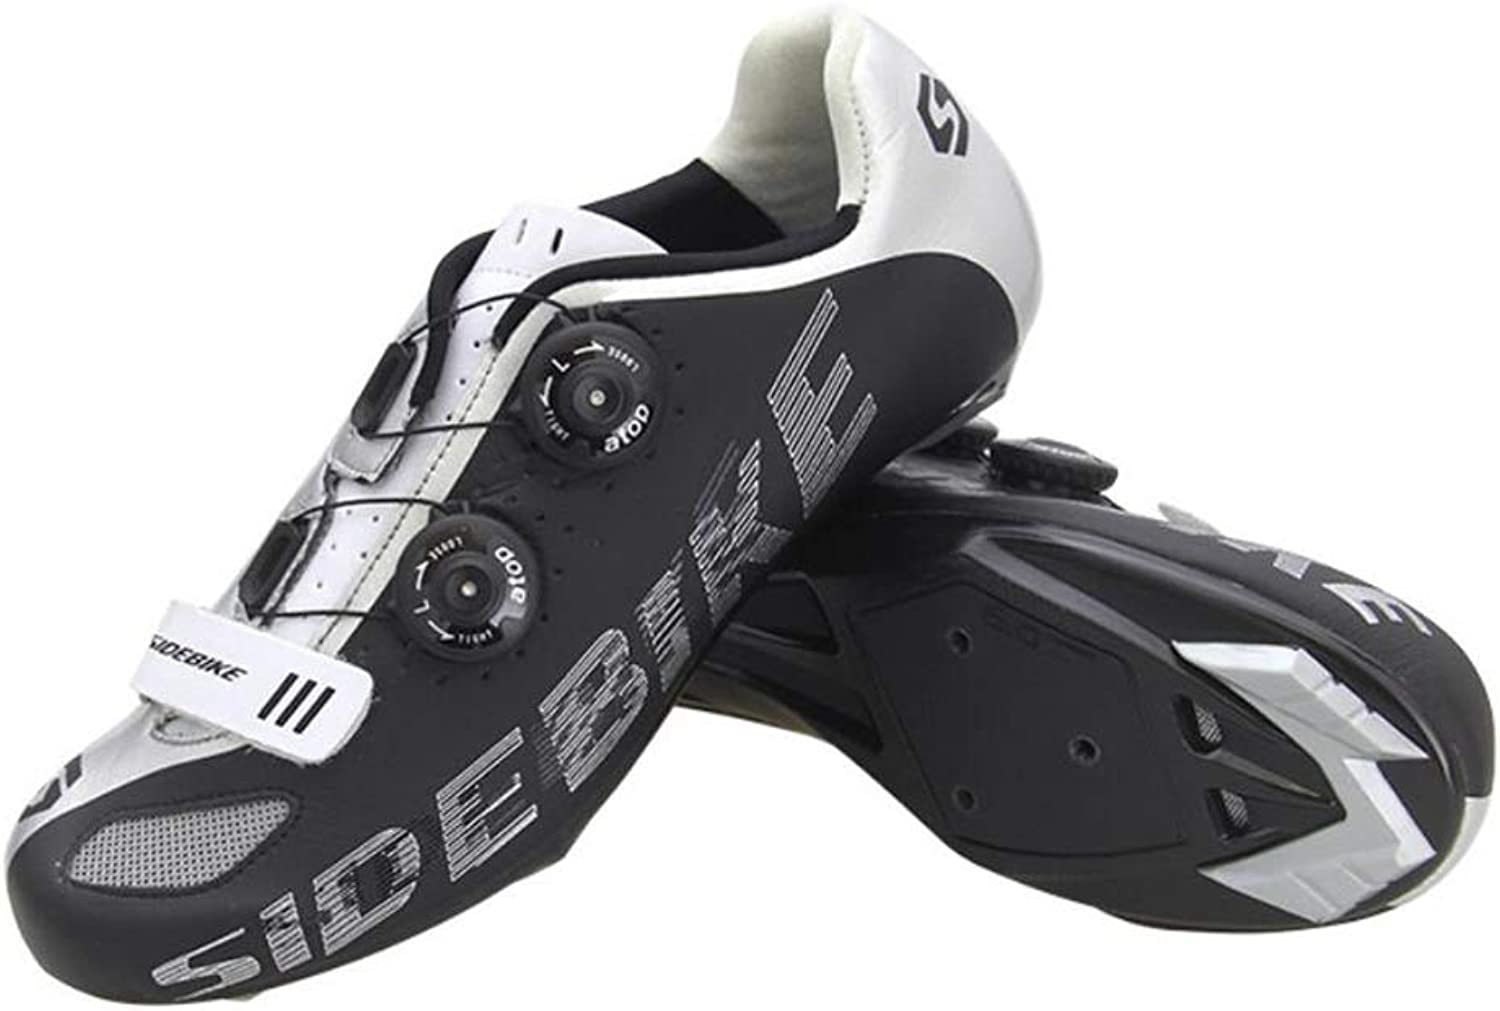 Bicycle shoes, Nylon Bicycle Road shoes, Men's Racing Professional Bicycle shoes, Over-Hanging Buckle Design, 2 colors